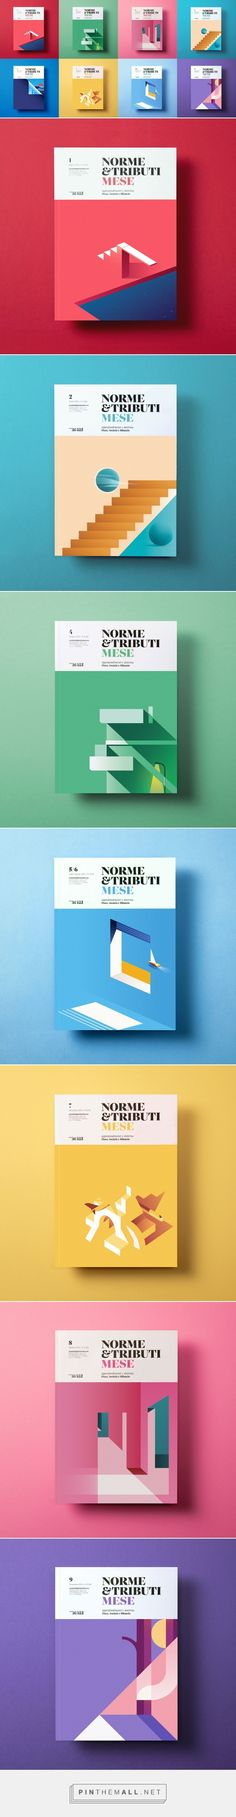 Cover Design by Ray Oranges | Abduzeedo Design Inspiration - created via https://pinthemall.net